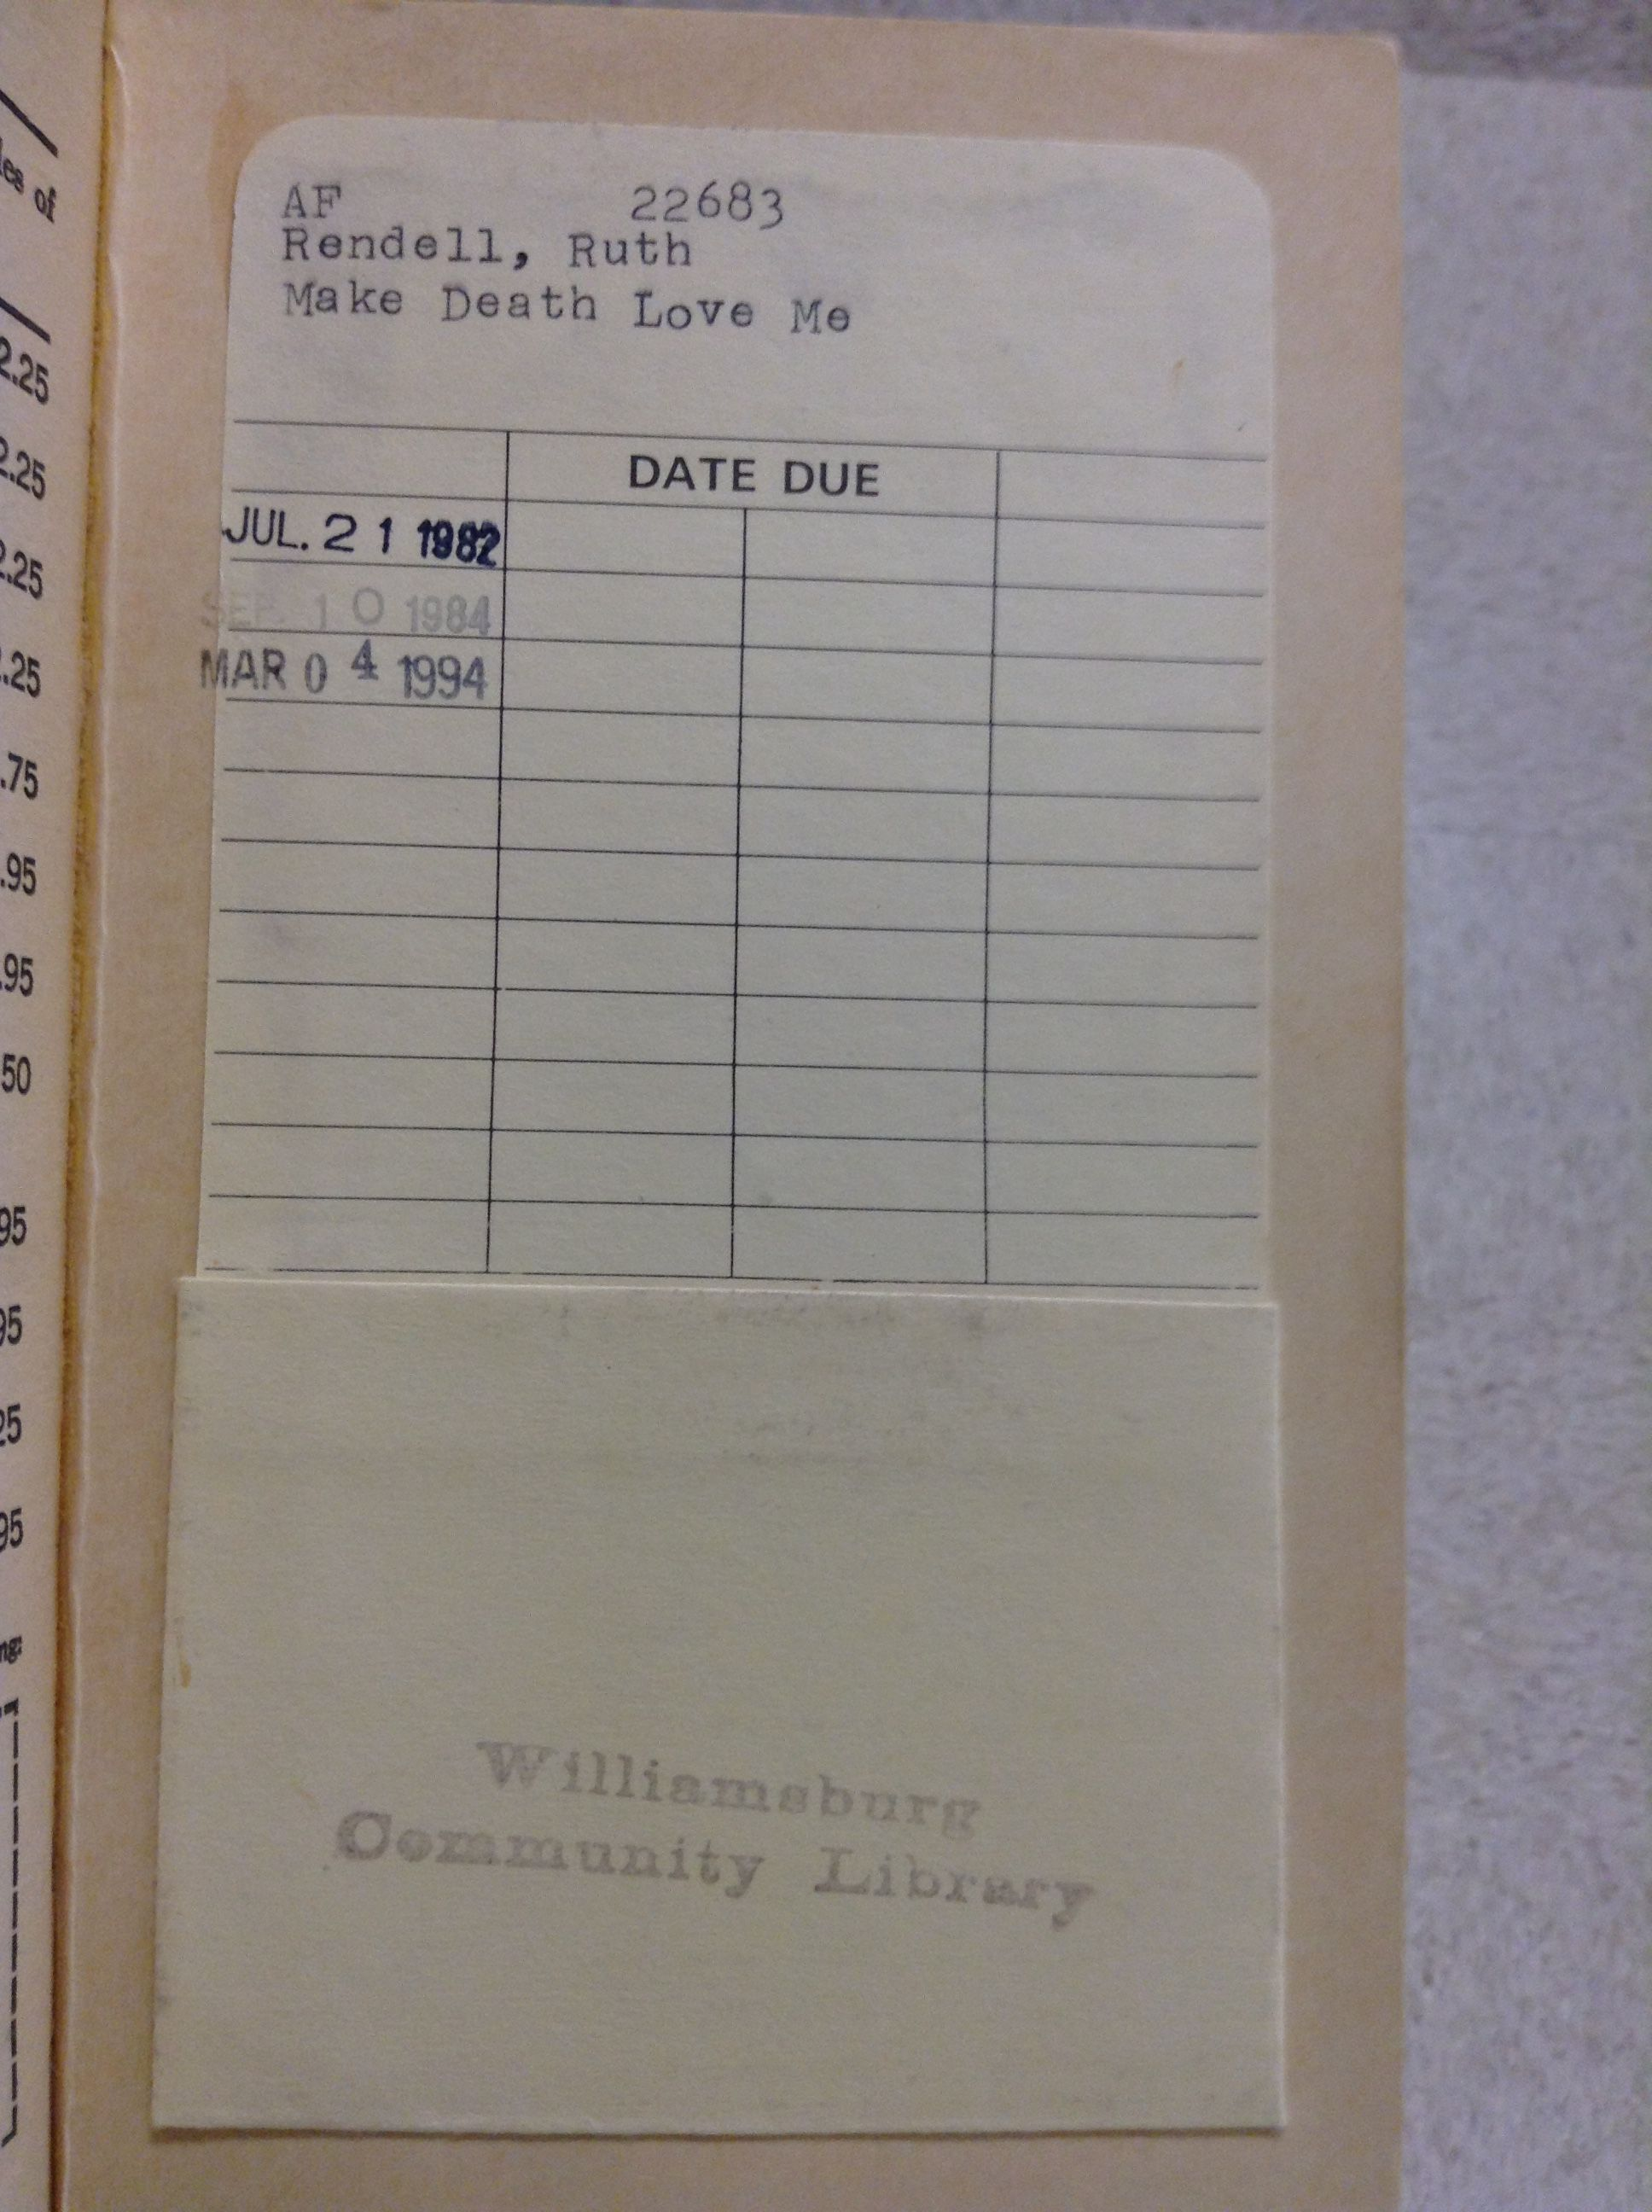 Pin by ryan blanck on library card pockets from exlibrary books